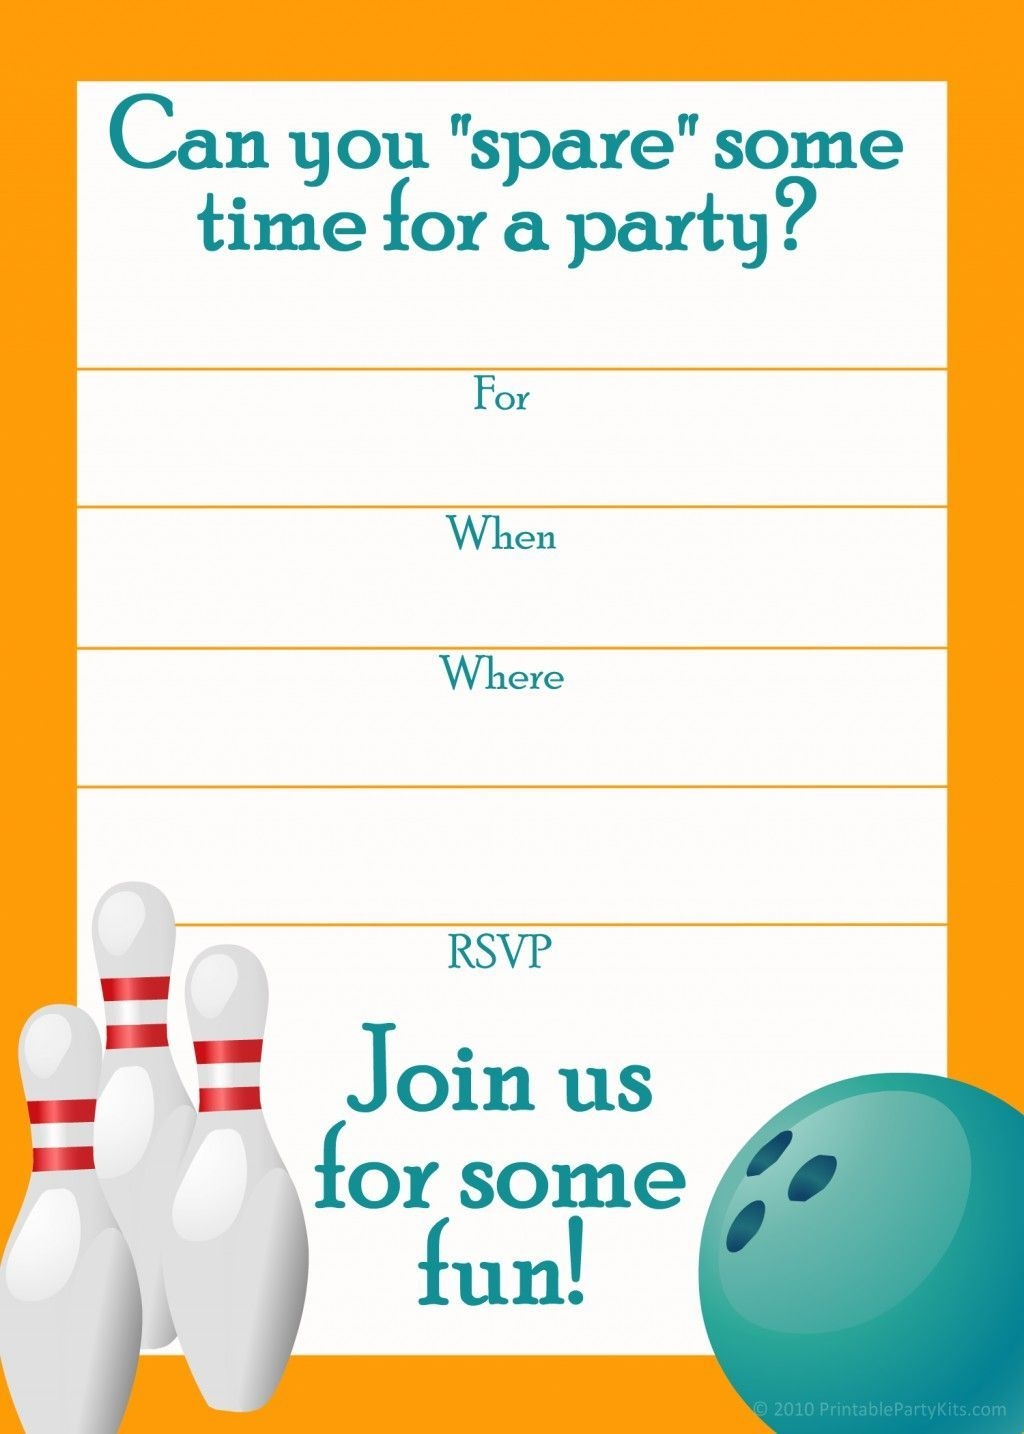 free printable bowling birthday party invitations ; free-printable-sports-birthday-party-invitations-templates-party-in-bowling-birthday-party-invitation-template